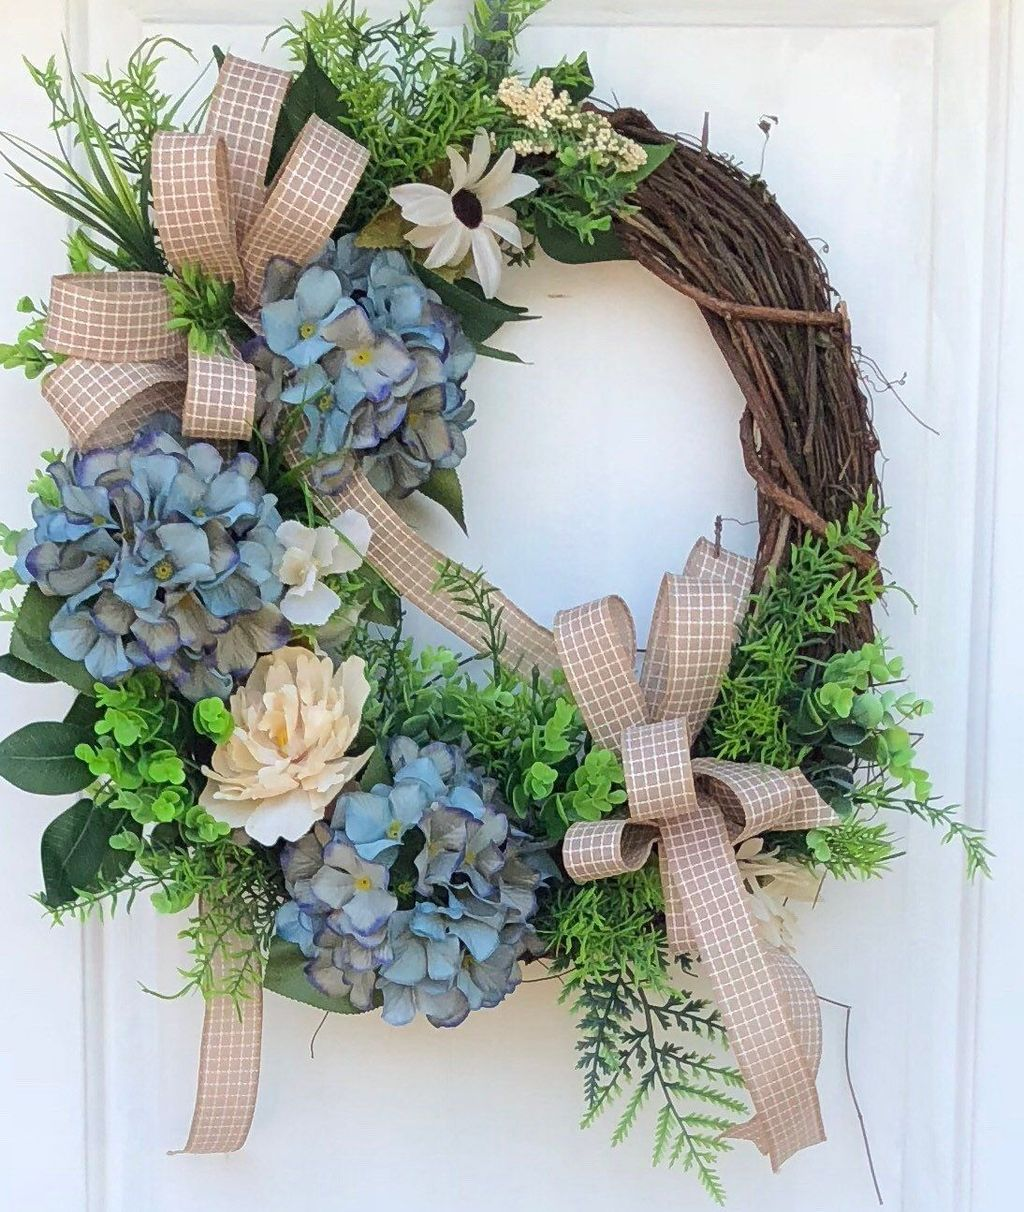 Inspiring Summer Wreath Design Ideas You Should Copy 32